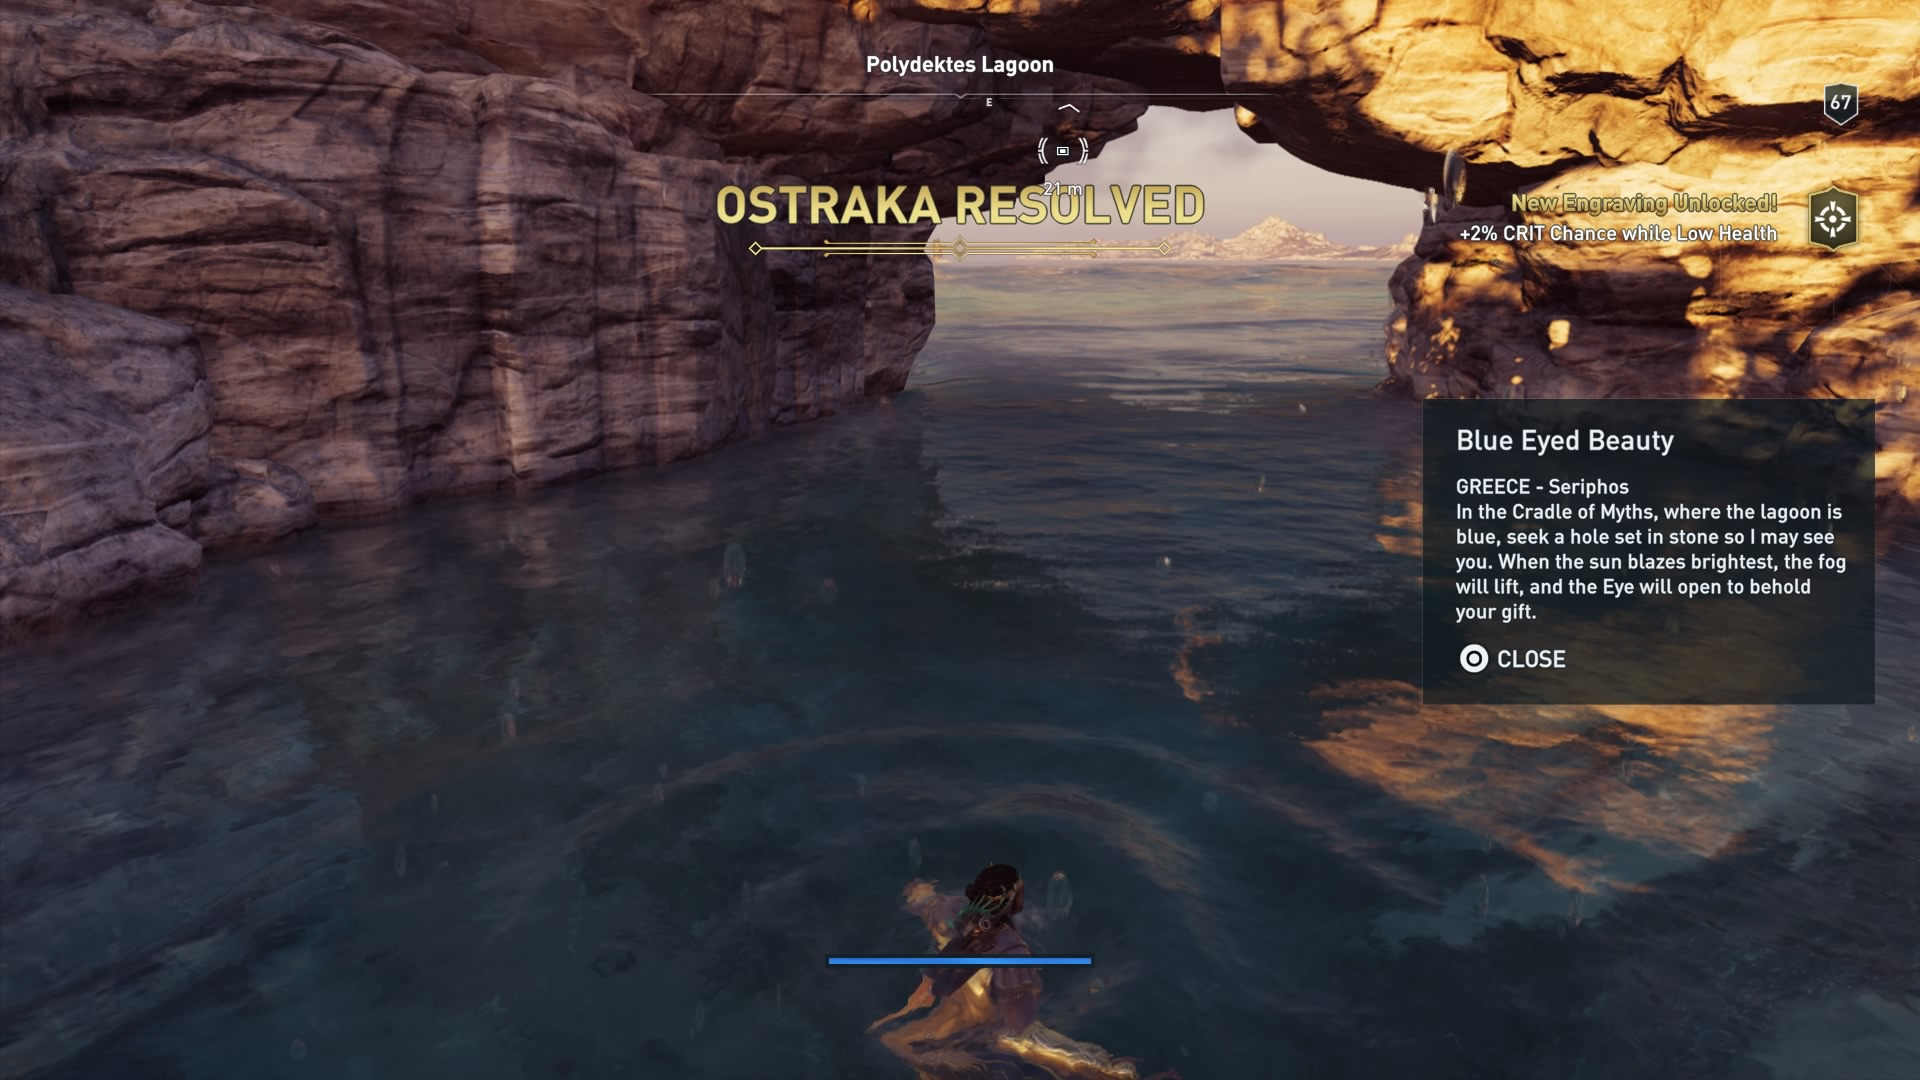 Ac Odyssey Blue Eyed Beauty Riddle Cradle Of Myths Tablet Location